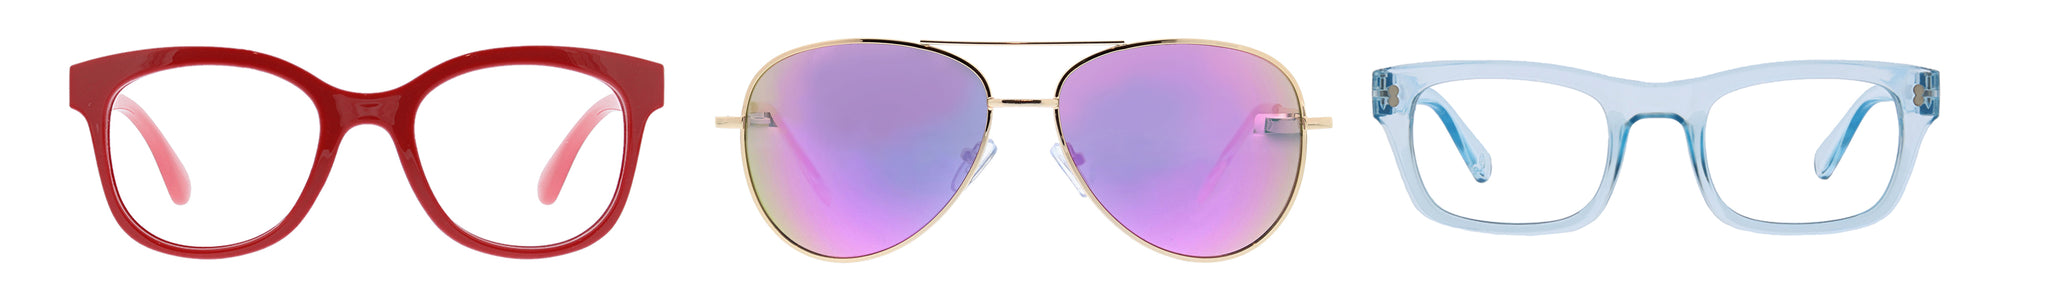 Peepers Grandview and Venice reading glasses and Heat Wave aviator sunglasses on a white background